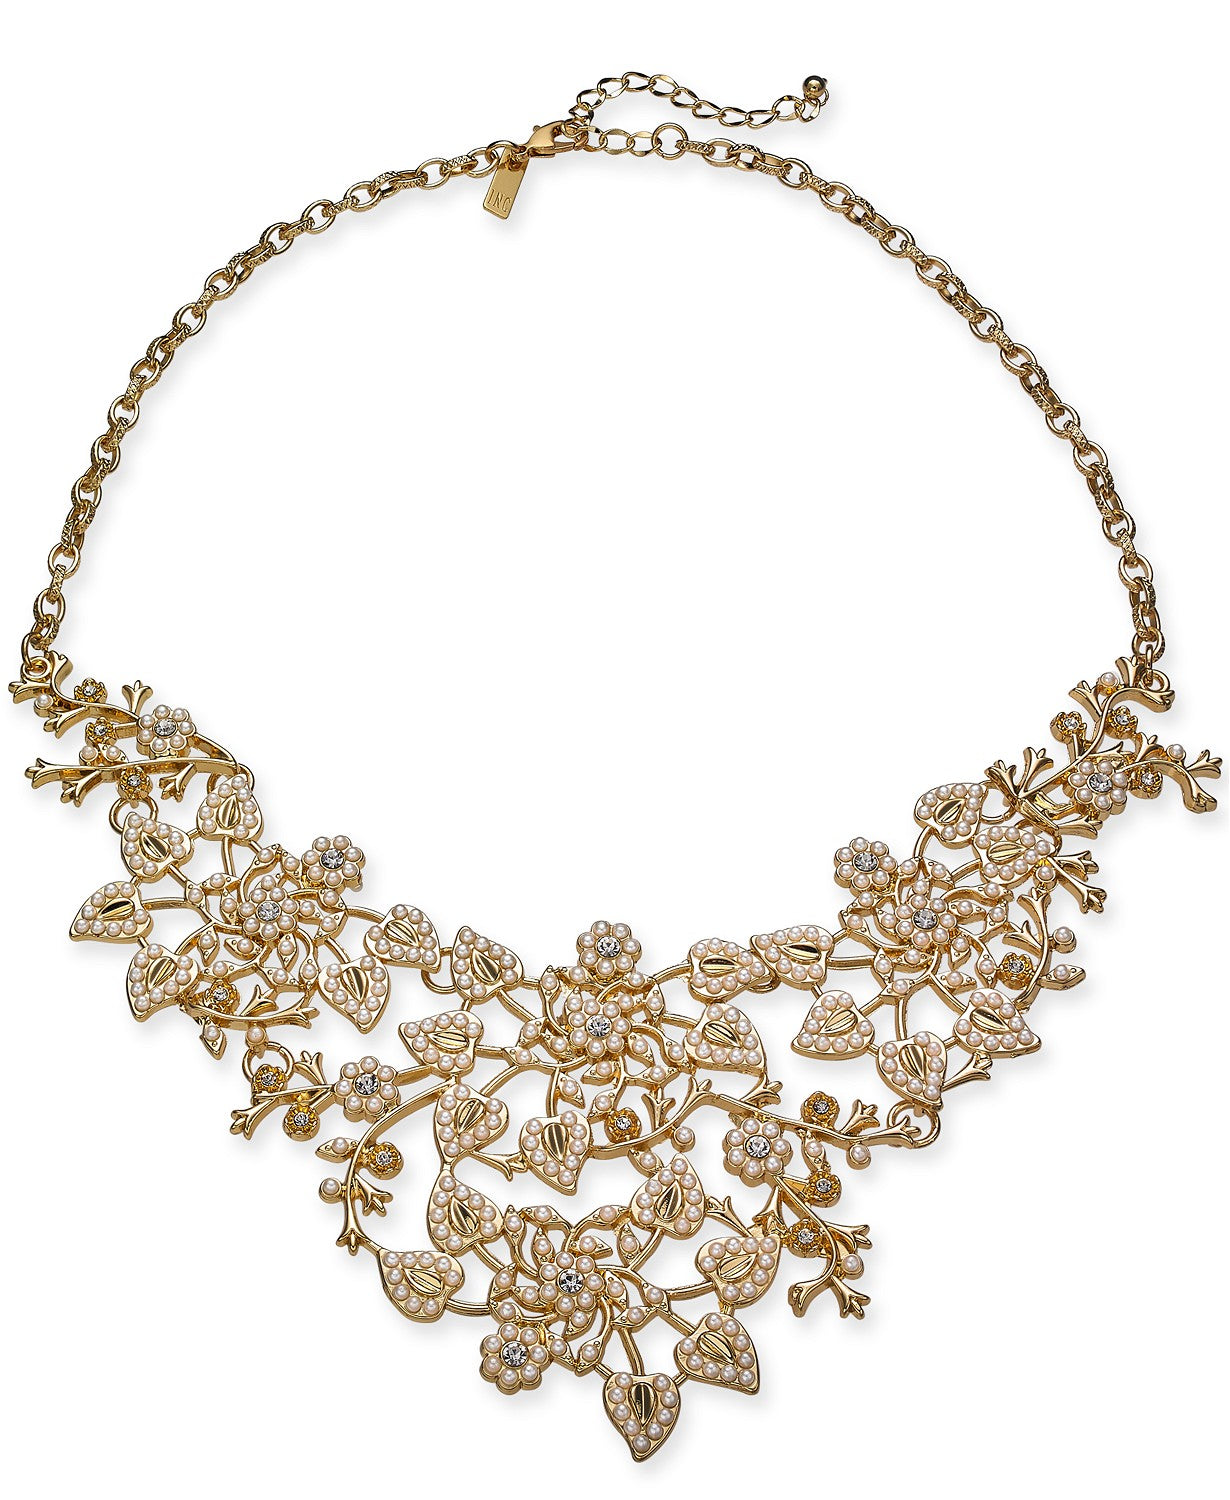 "INC Gold-Tone Crystal & Imitation Pearl Vine Statement Necklace, 18"" + 3"" extender"